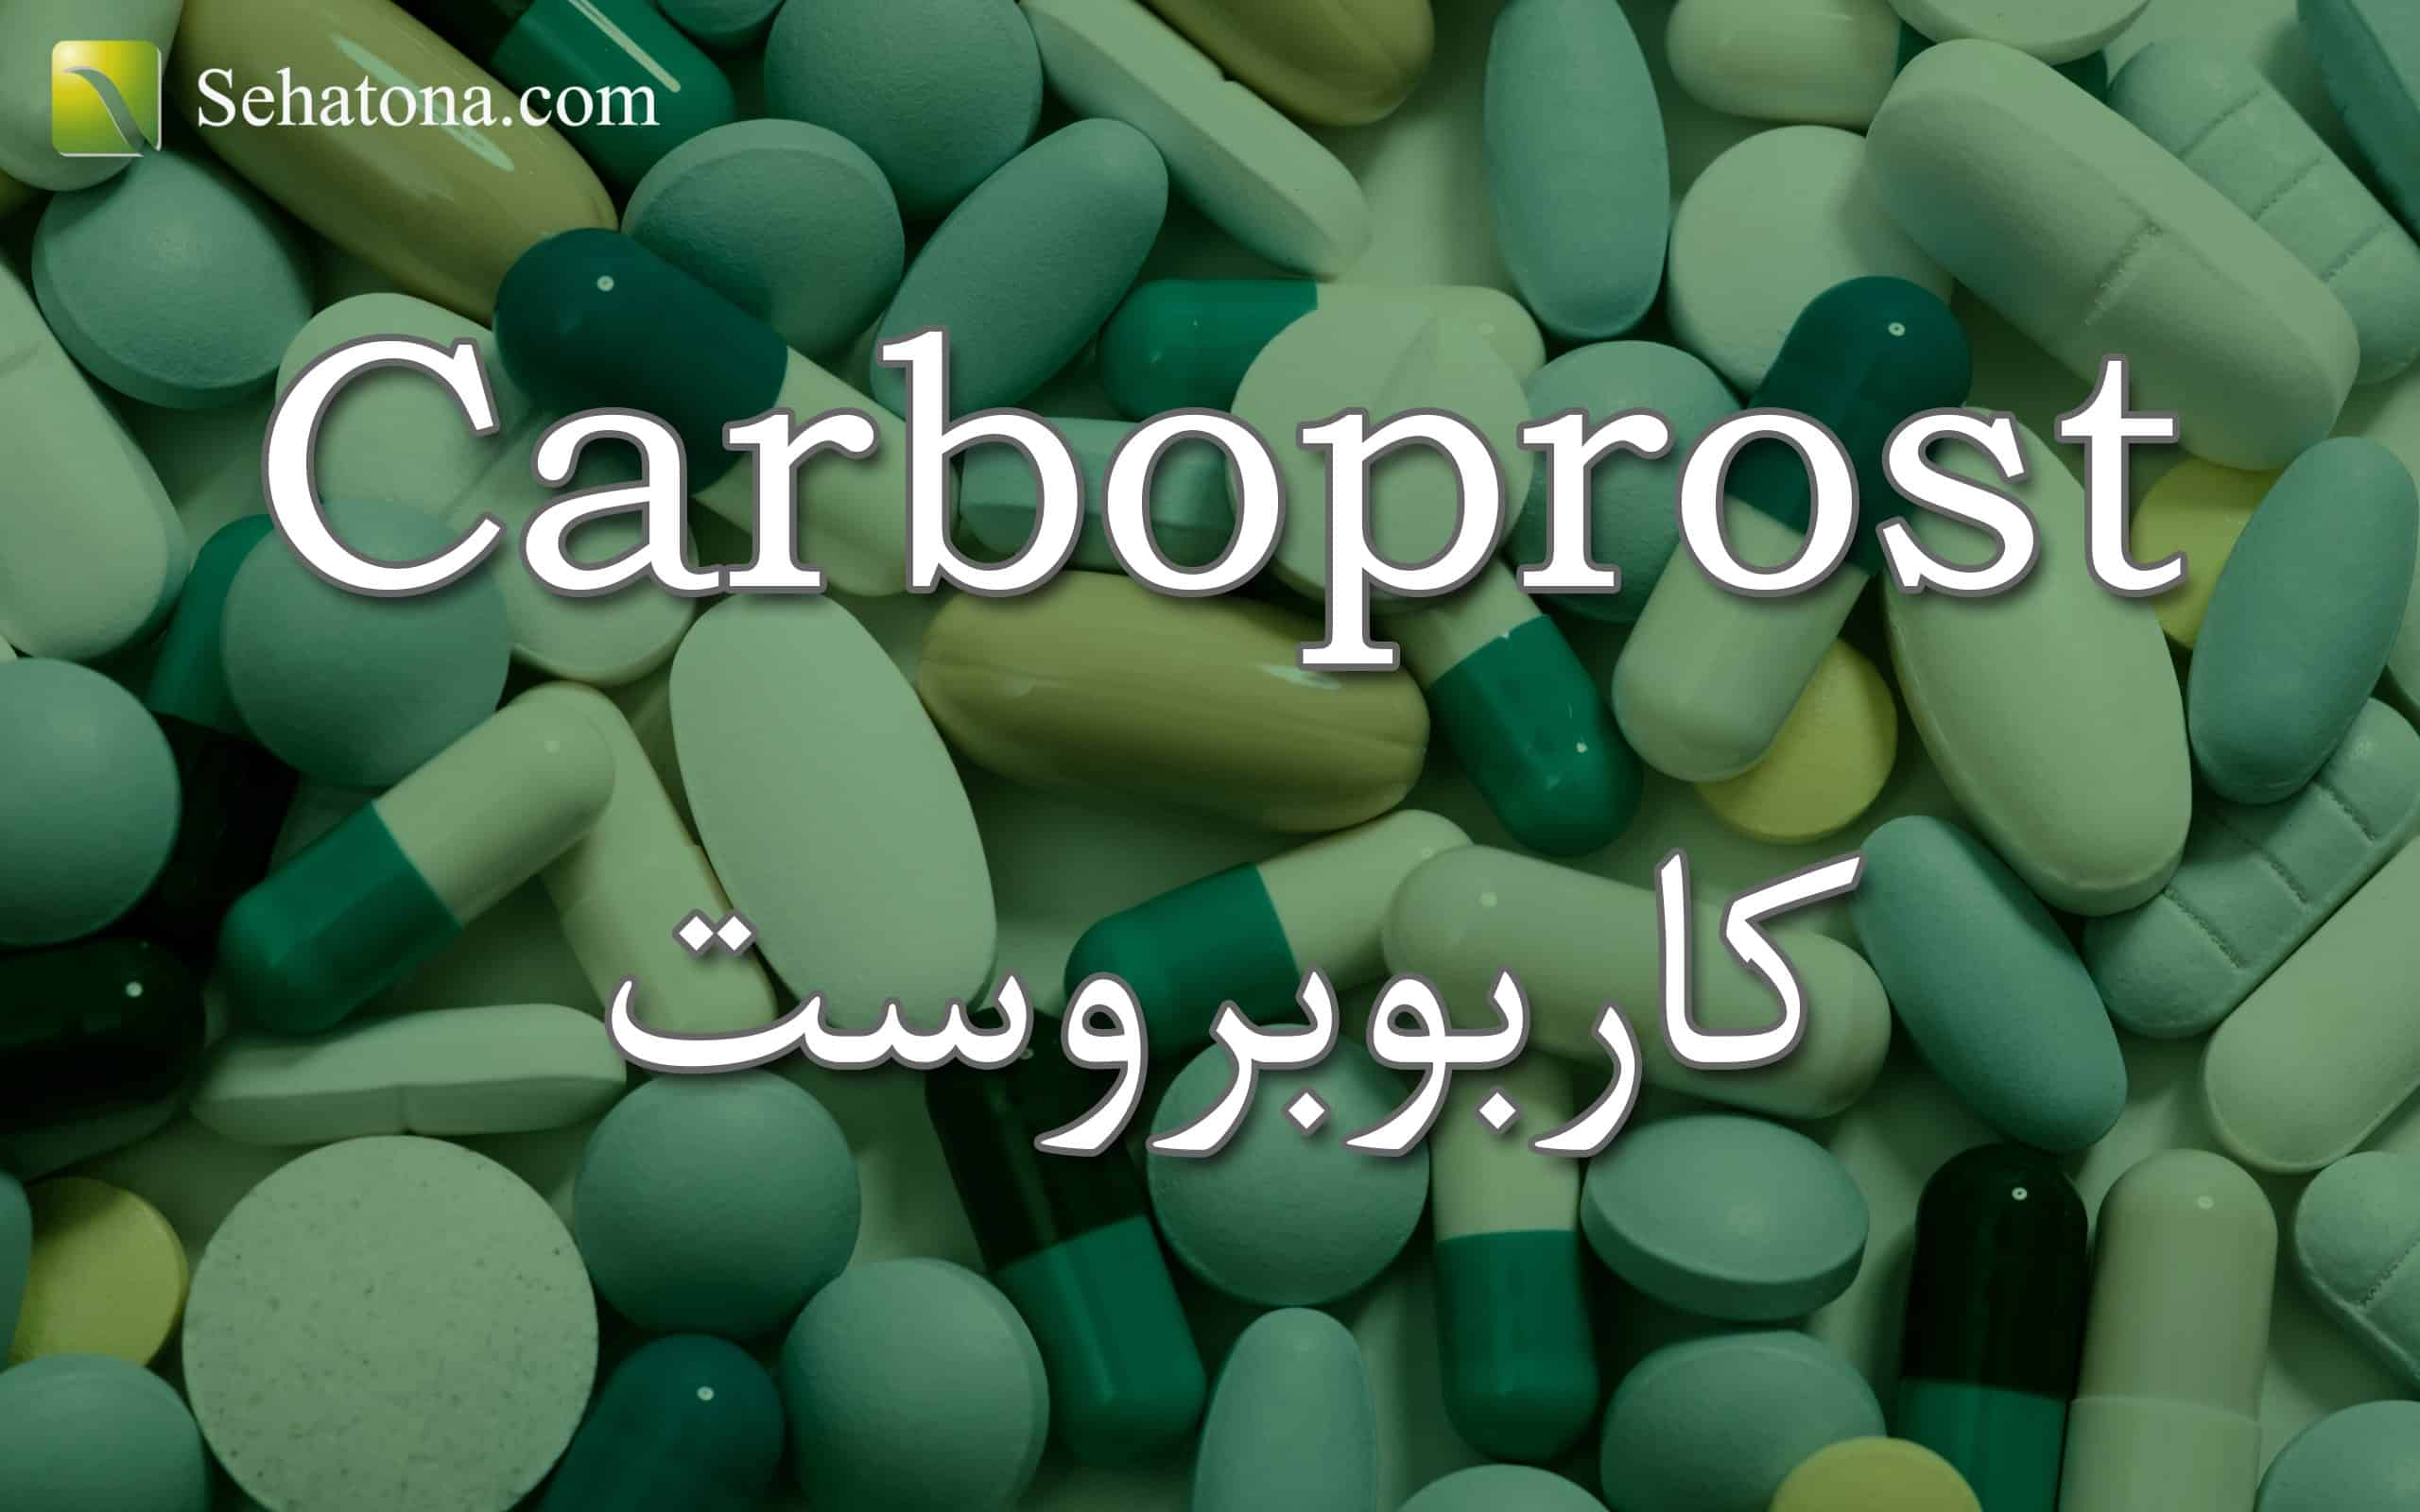 Carboprost